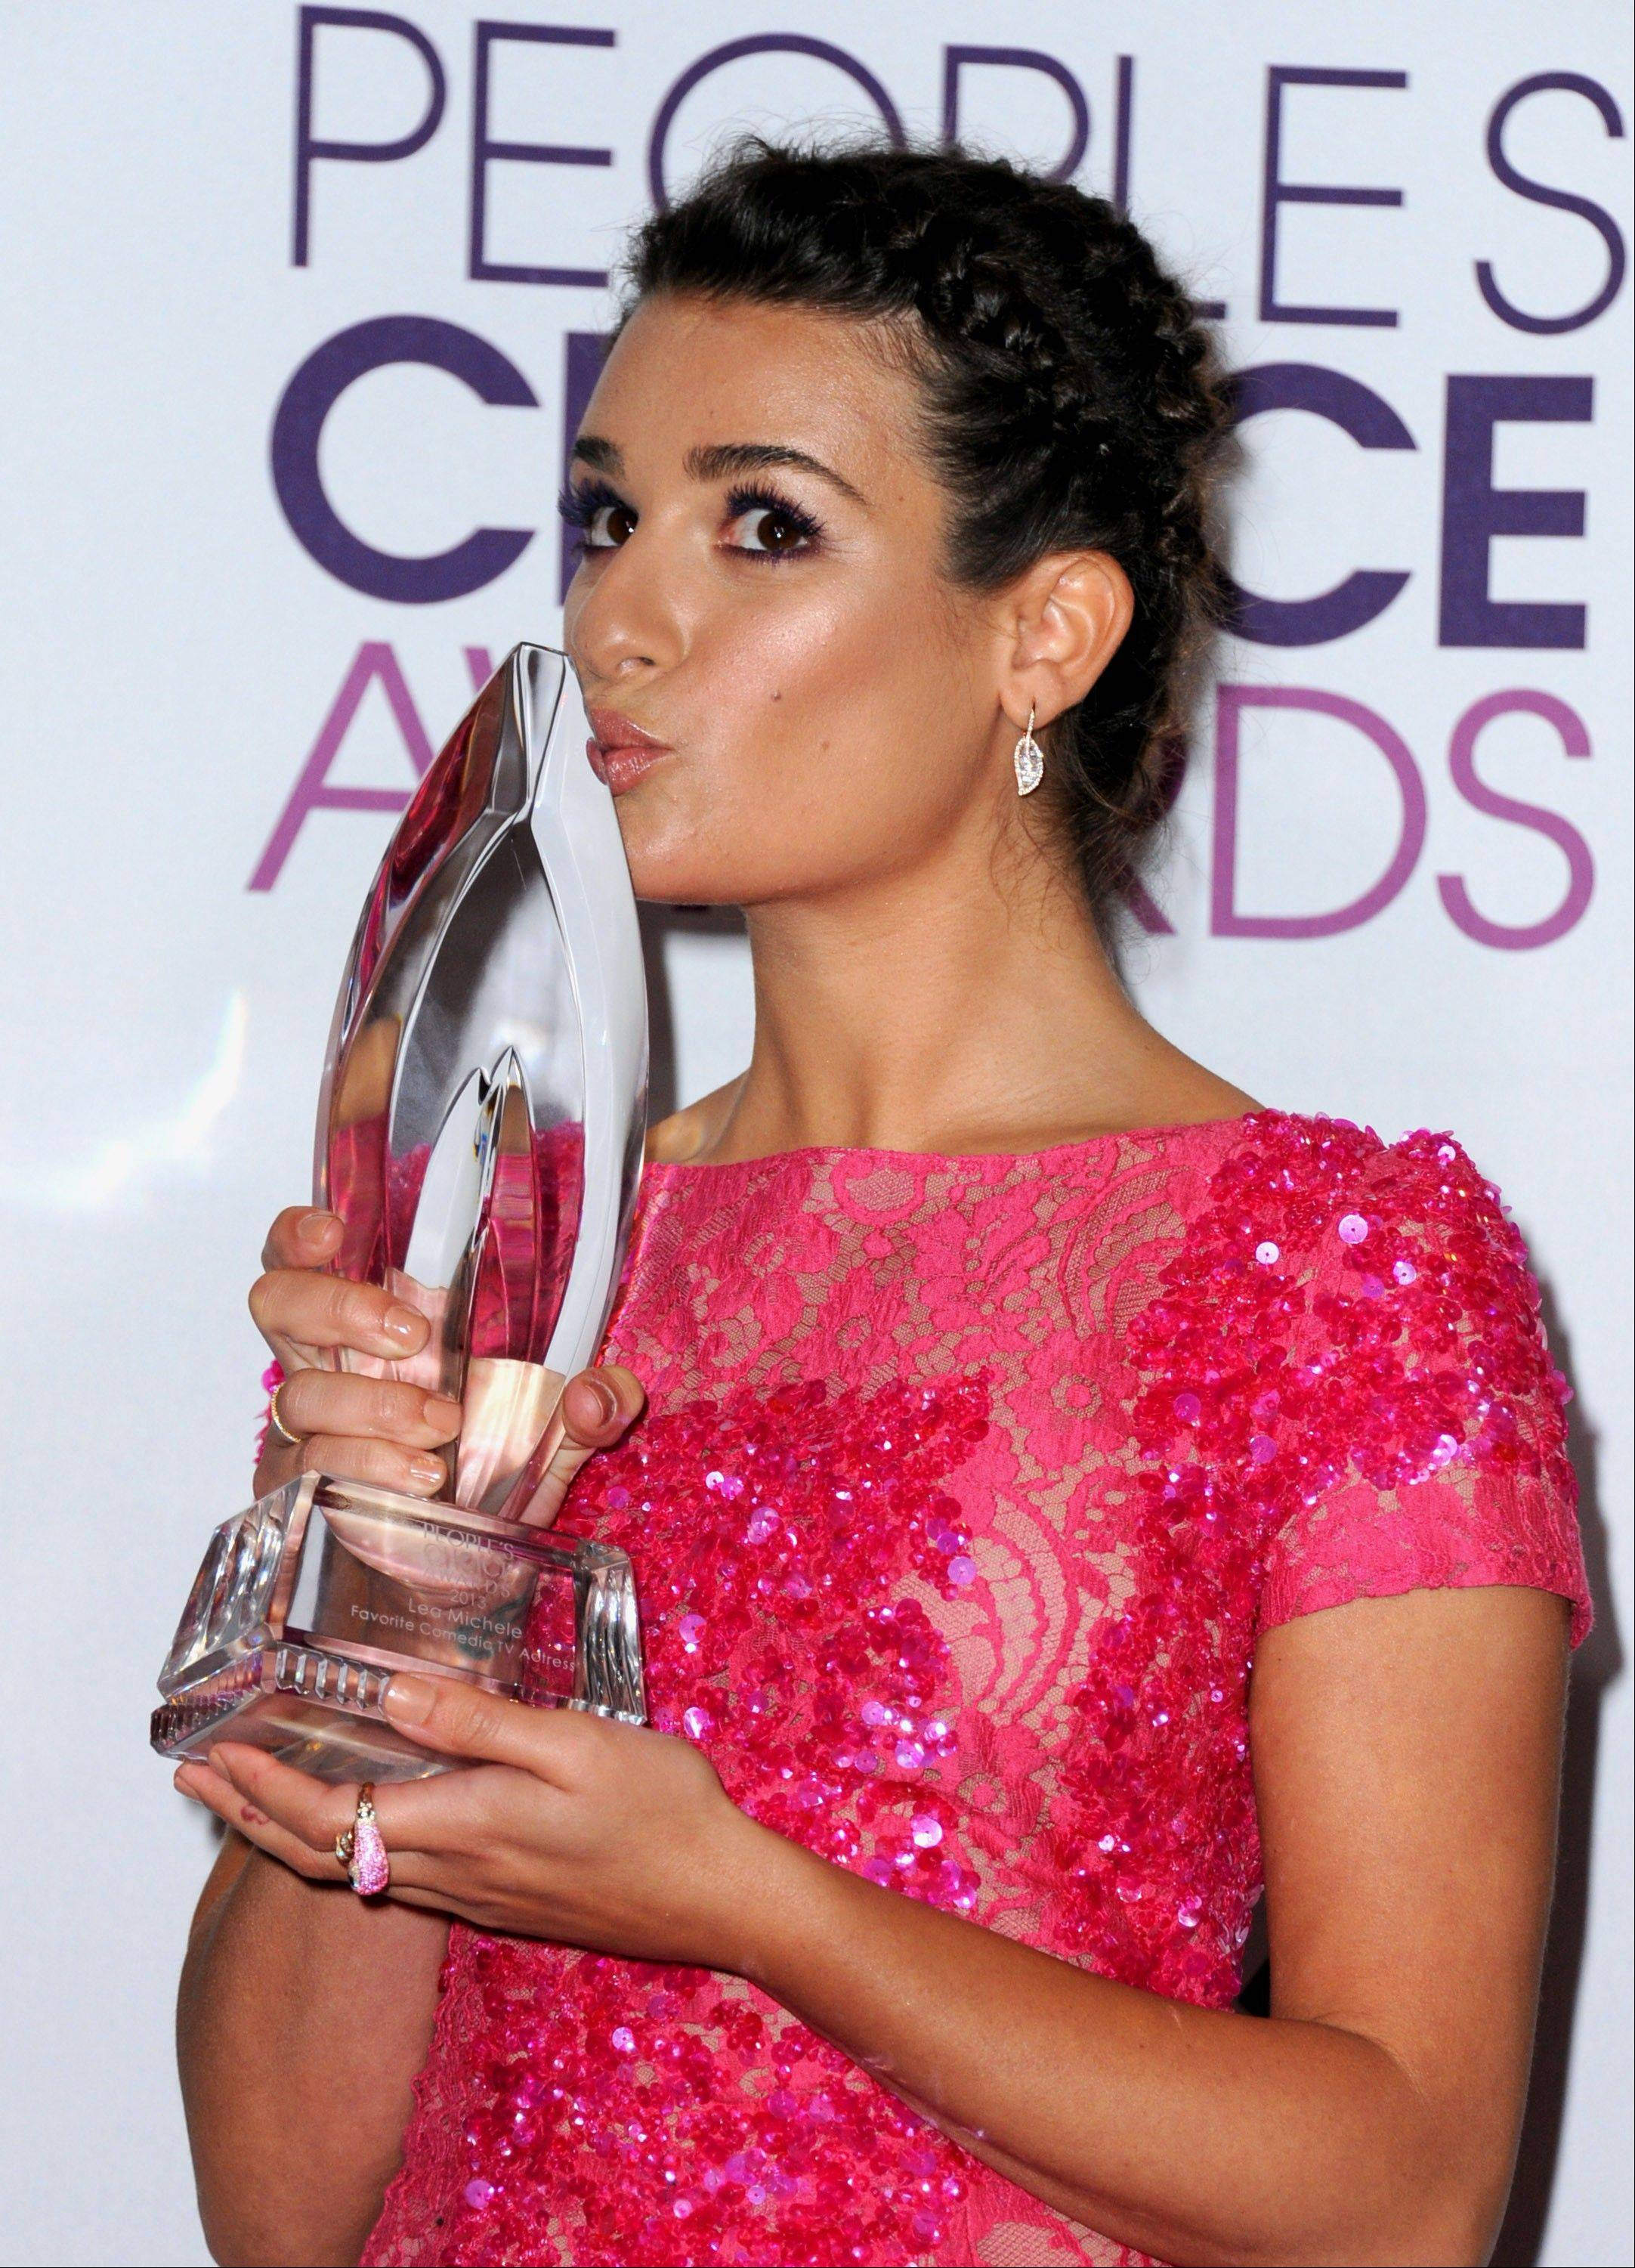 Lea Michele poses backstage with the award for favorite comedic TV actress at the People's Choice Awards at the Nokia Theatre on Wednesday Jan. 9, 2013, in Los Angeles. (Photo by Jordan Strauss/Invision/AP)